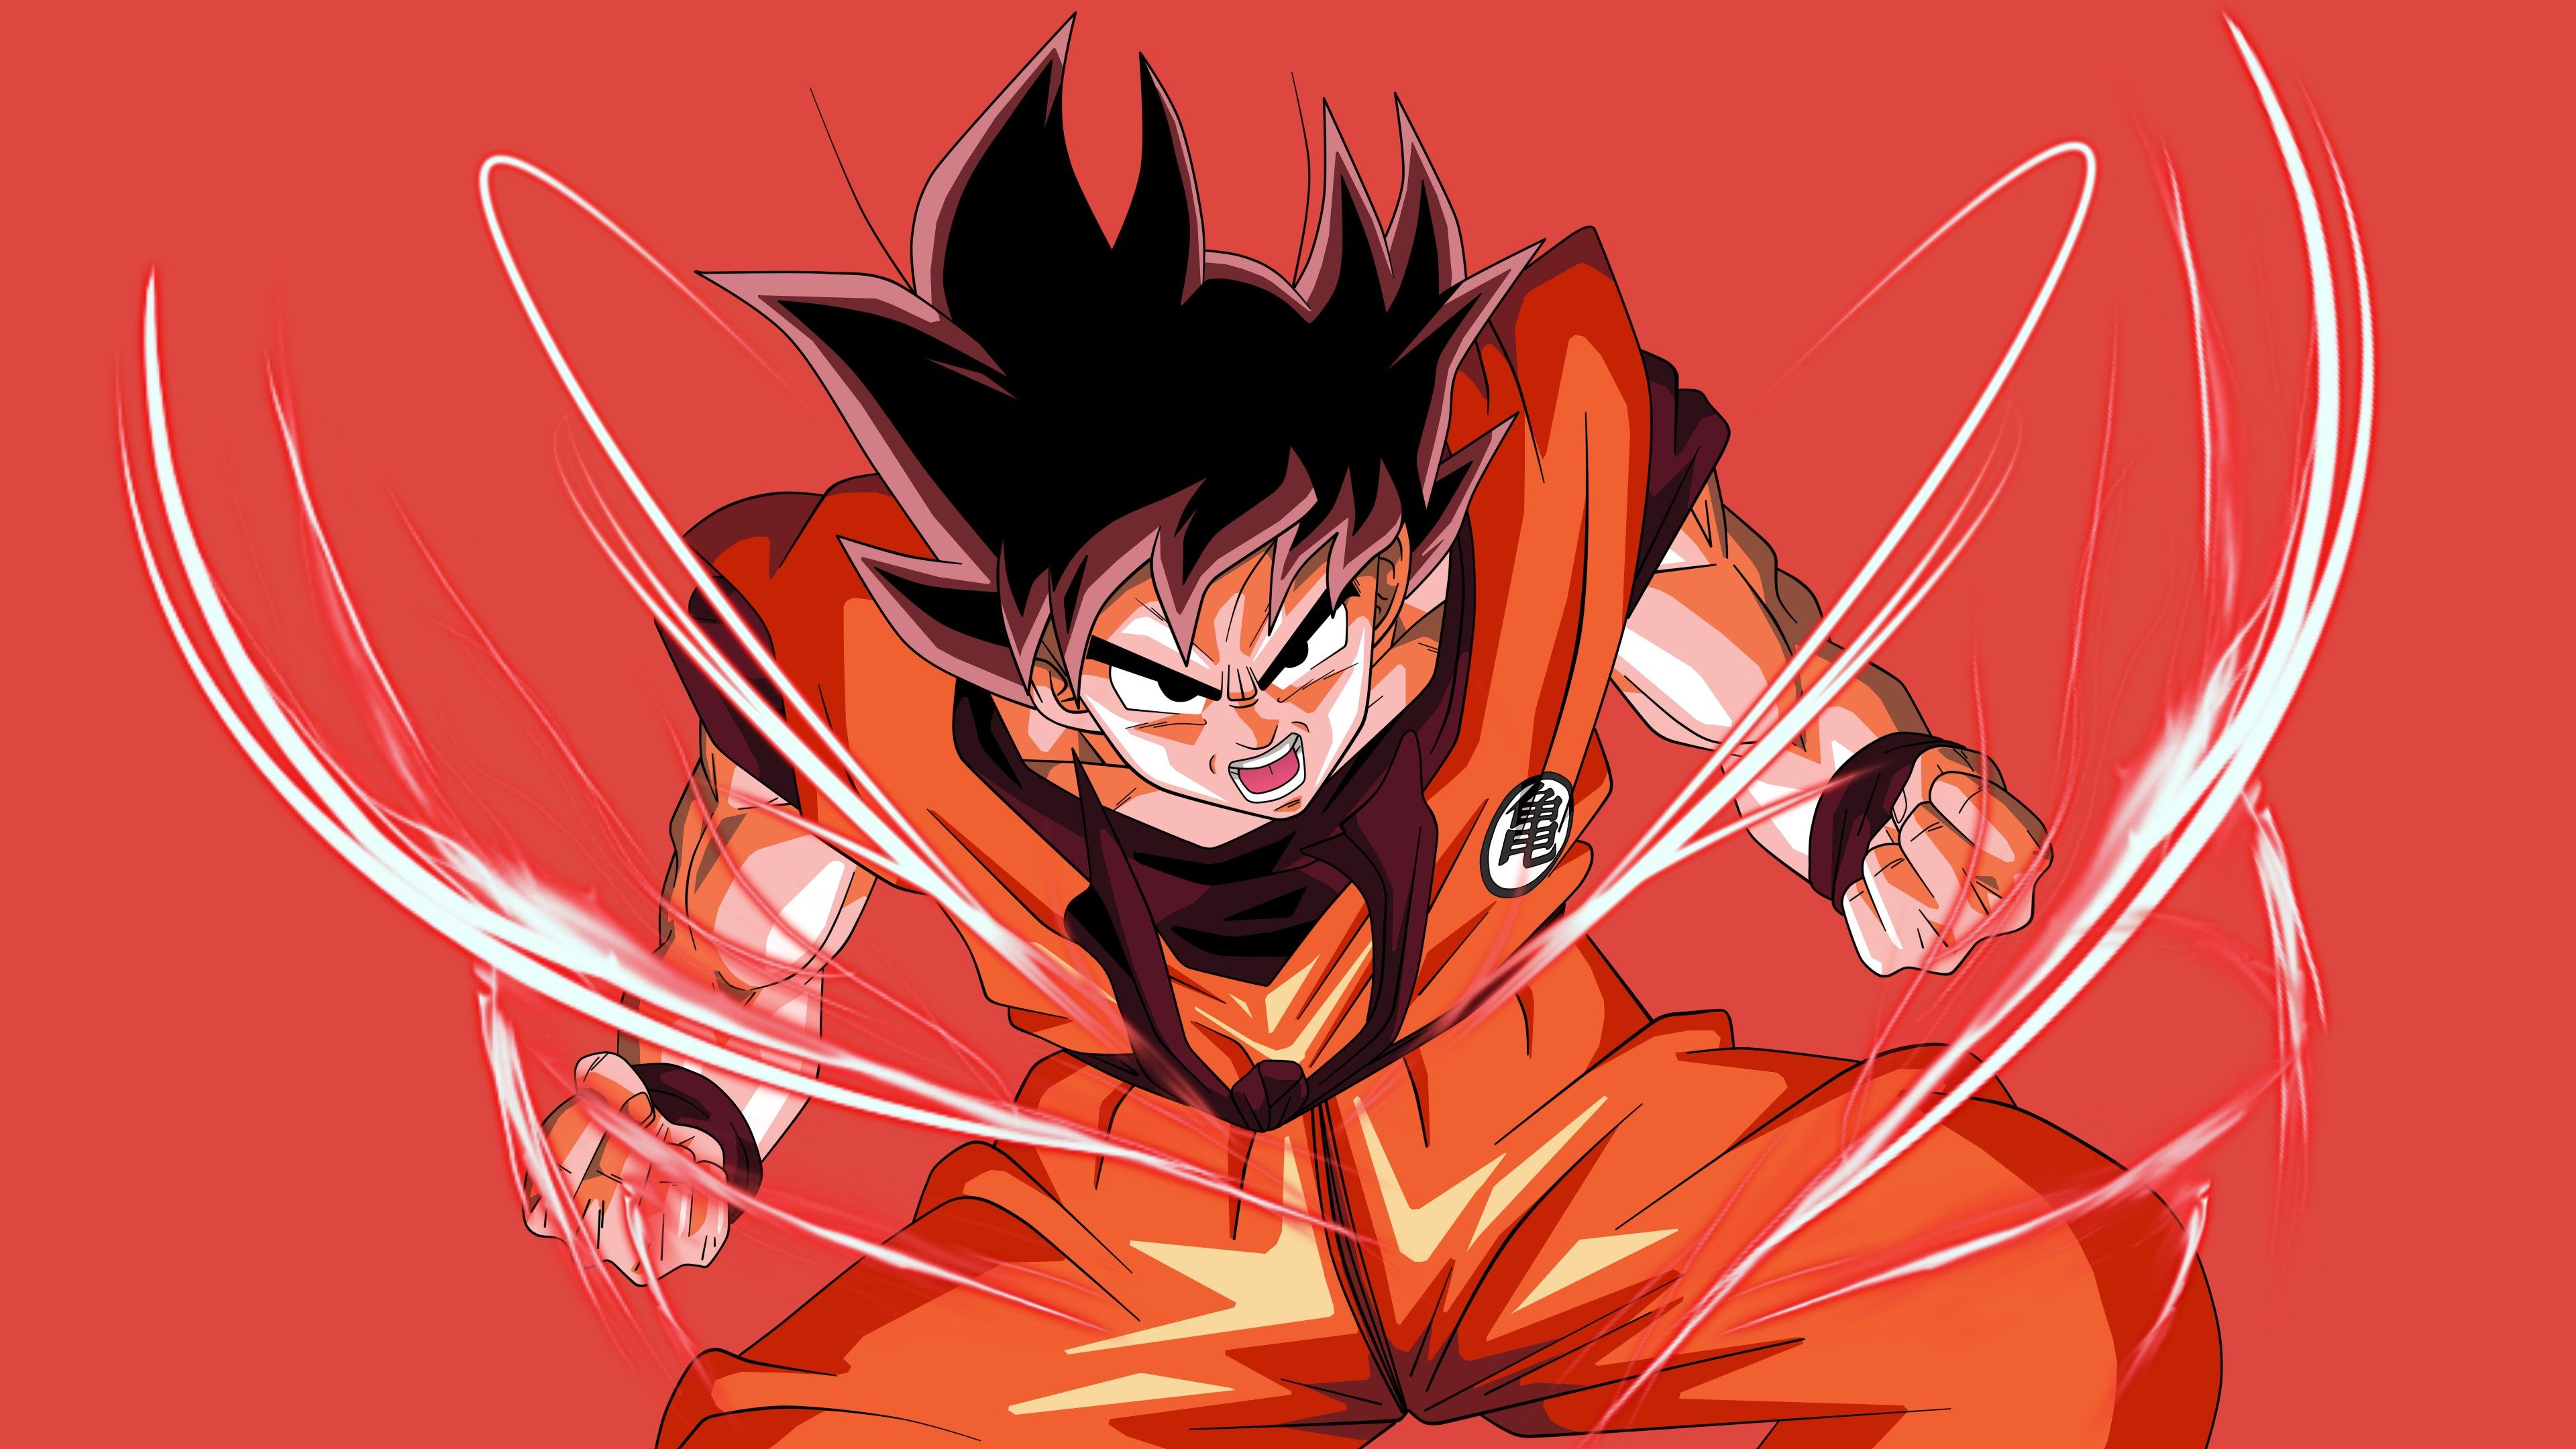 4k Dragon Ball Z Hd Wallpaper 3840x2160 Wallpaperscreator